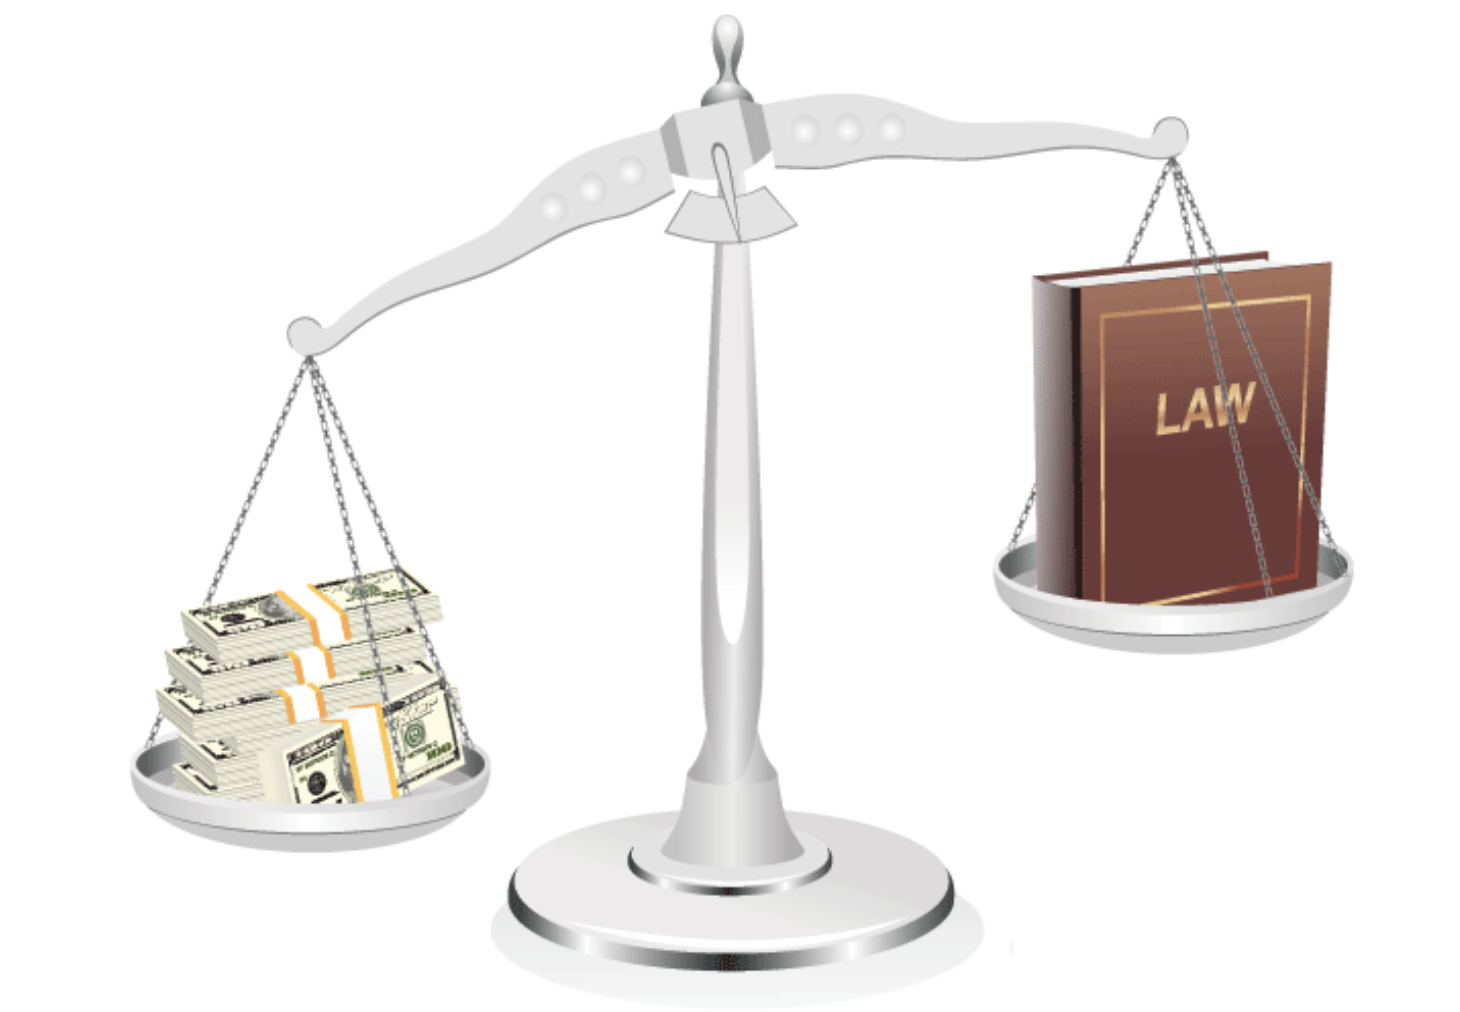 'Florida law, a Property Owner can be Held Liable for an Injury on Their Property'